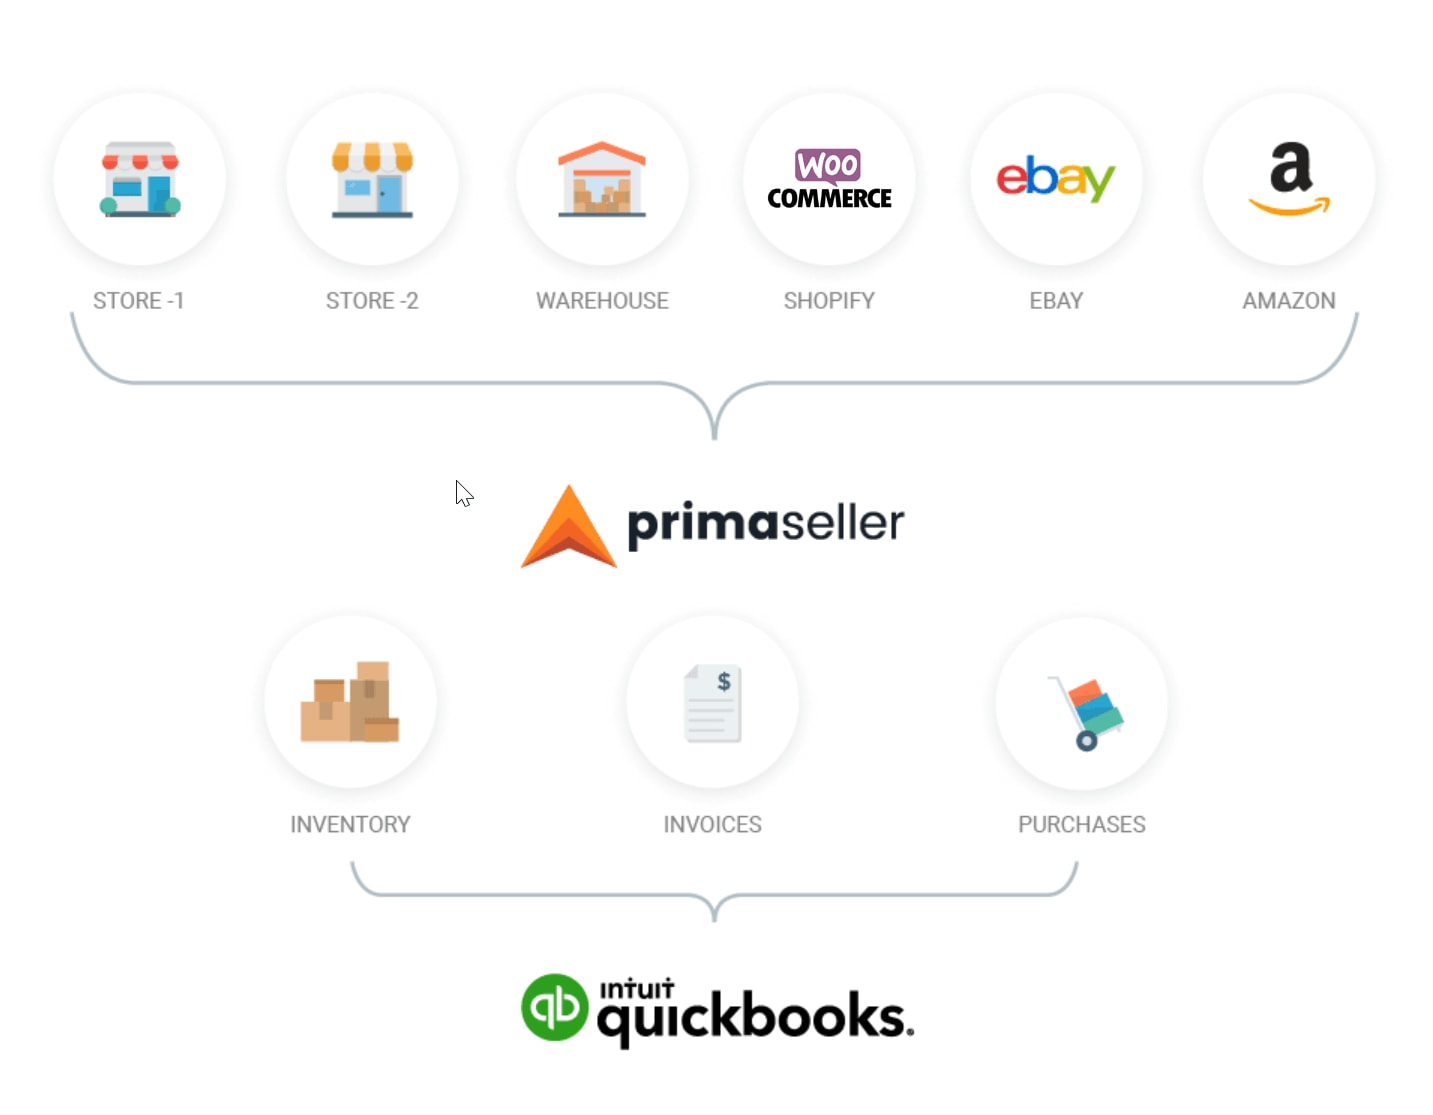 quickbooks and primaseller